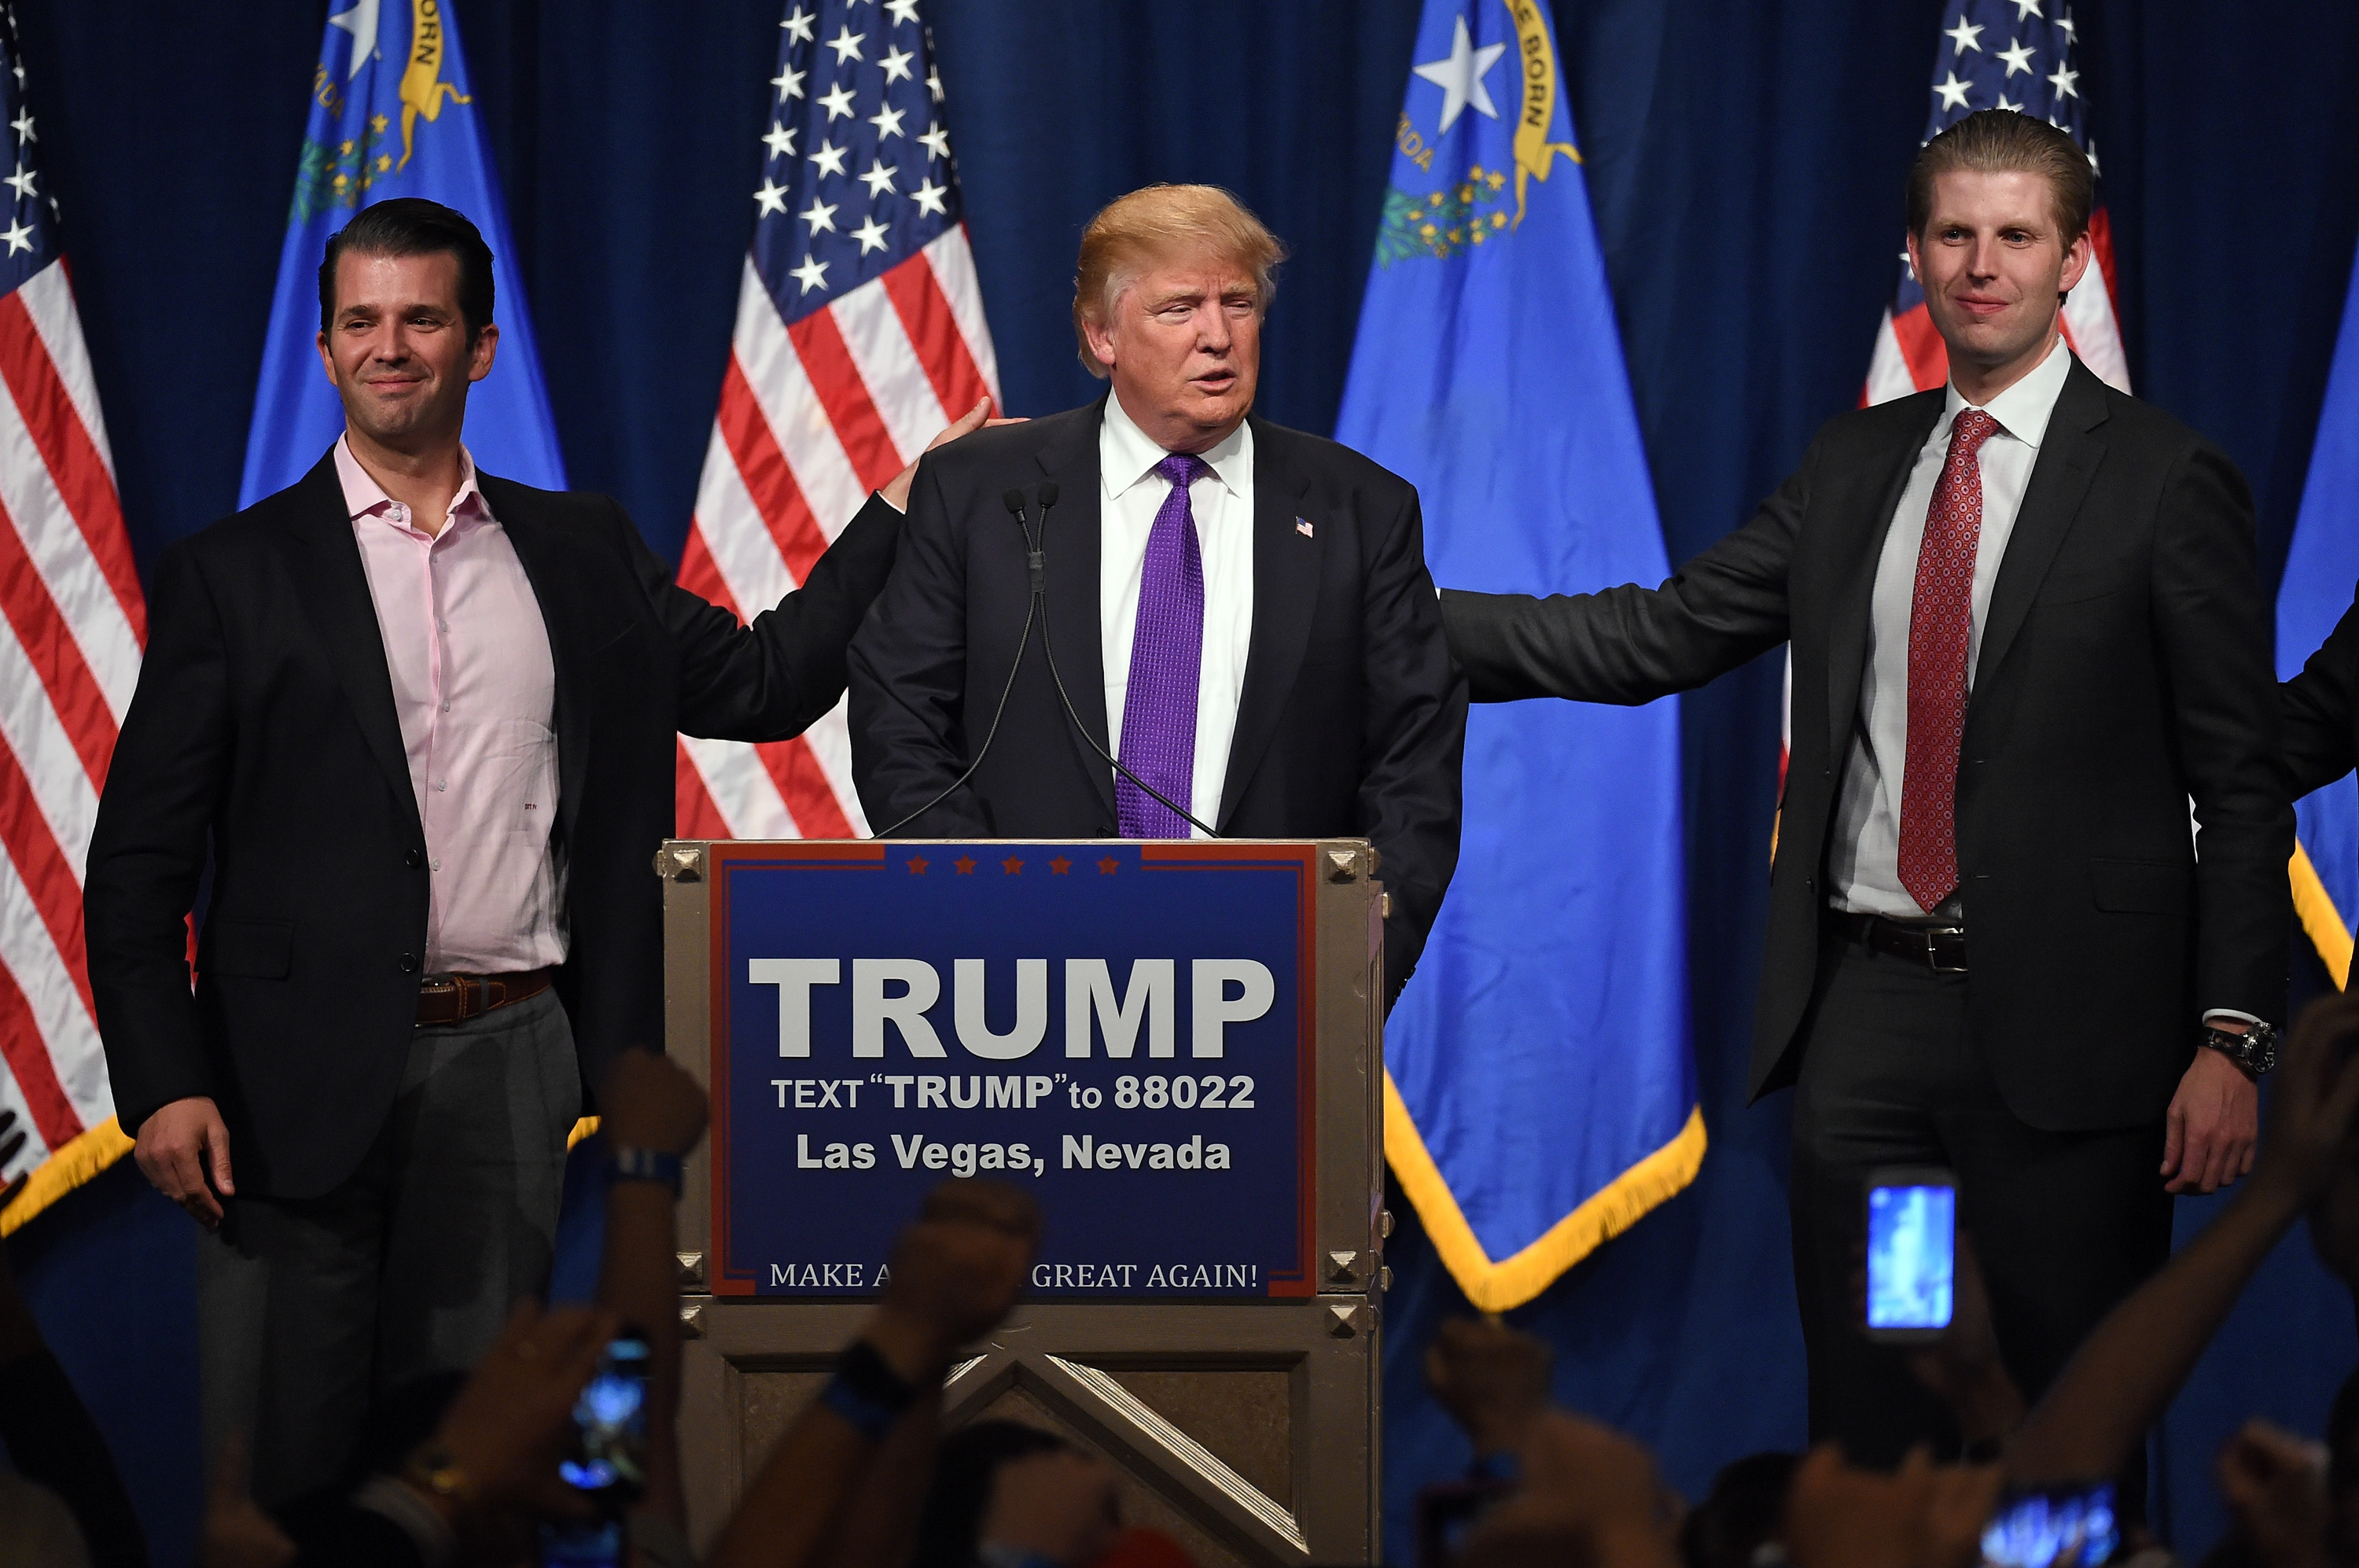 Republican presidential candidate Donald Trump (C) speaks as his sons Donald Trump Jr. (L) and Eric Trump (R) look on during a caucus night watch party at the Treasure Island Hotel & Casino on February 23, 2016 in Las Vegas, Nevada. The New York businessman won his third state victory in a row in the  first in the West  caucuses.